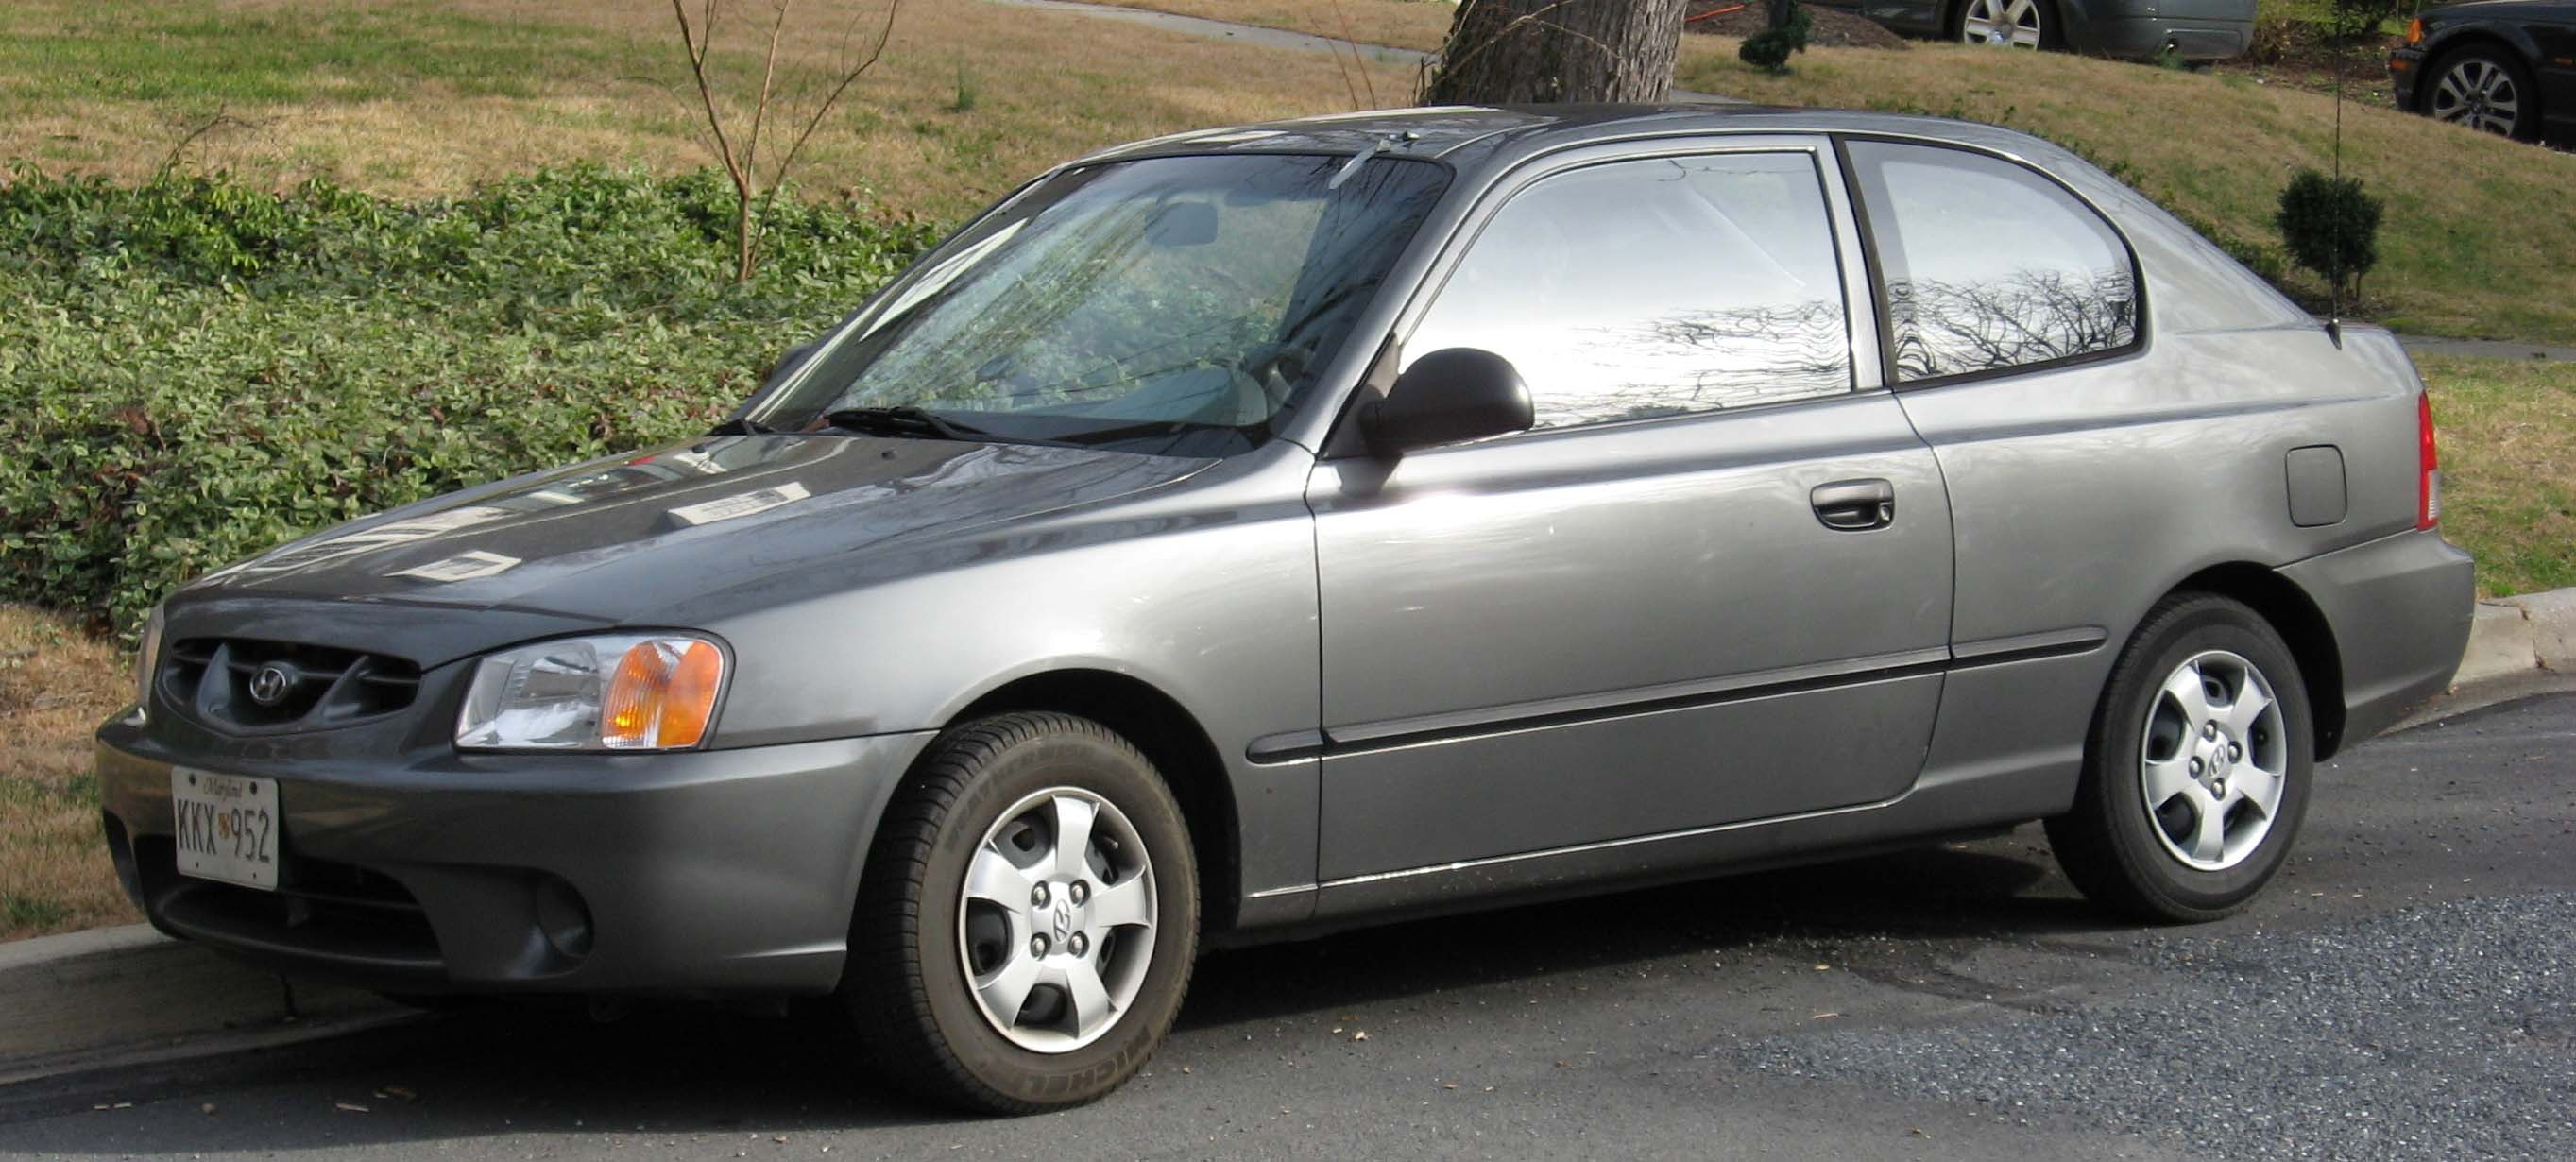 File:00-02 Hyundai Accent hatch 1.jpg - Wikimedia Commons